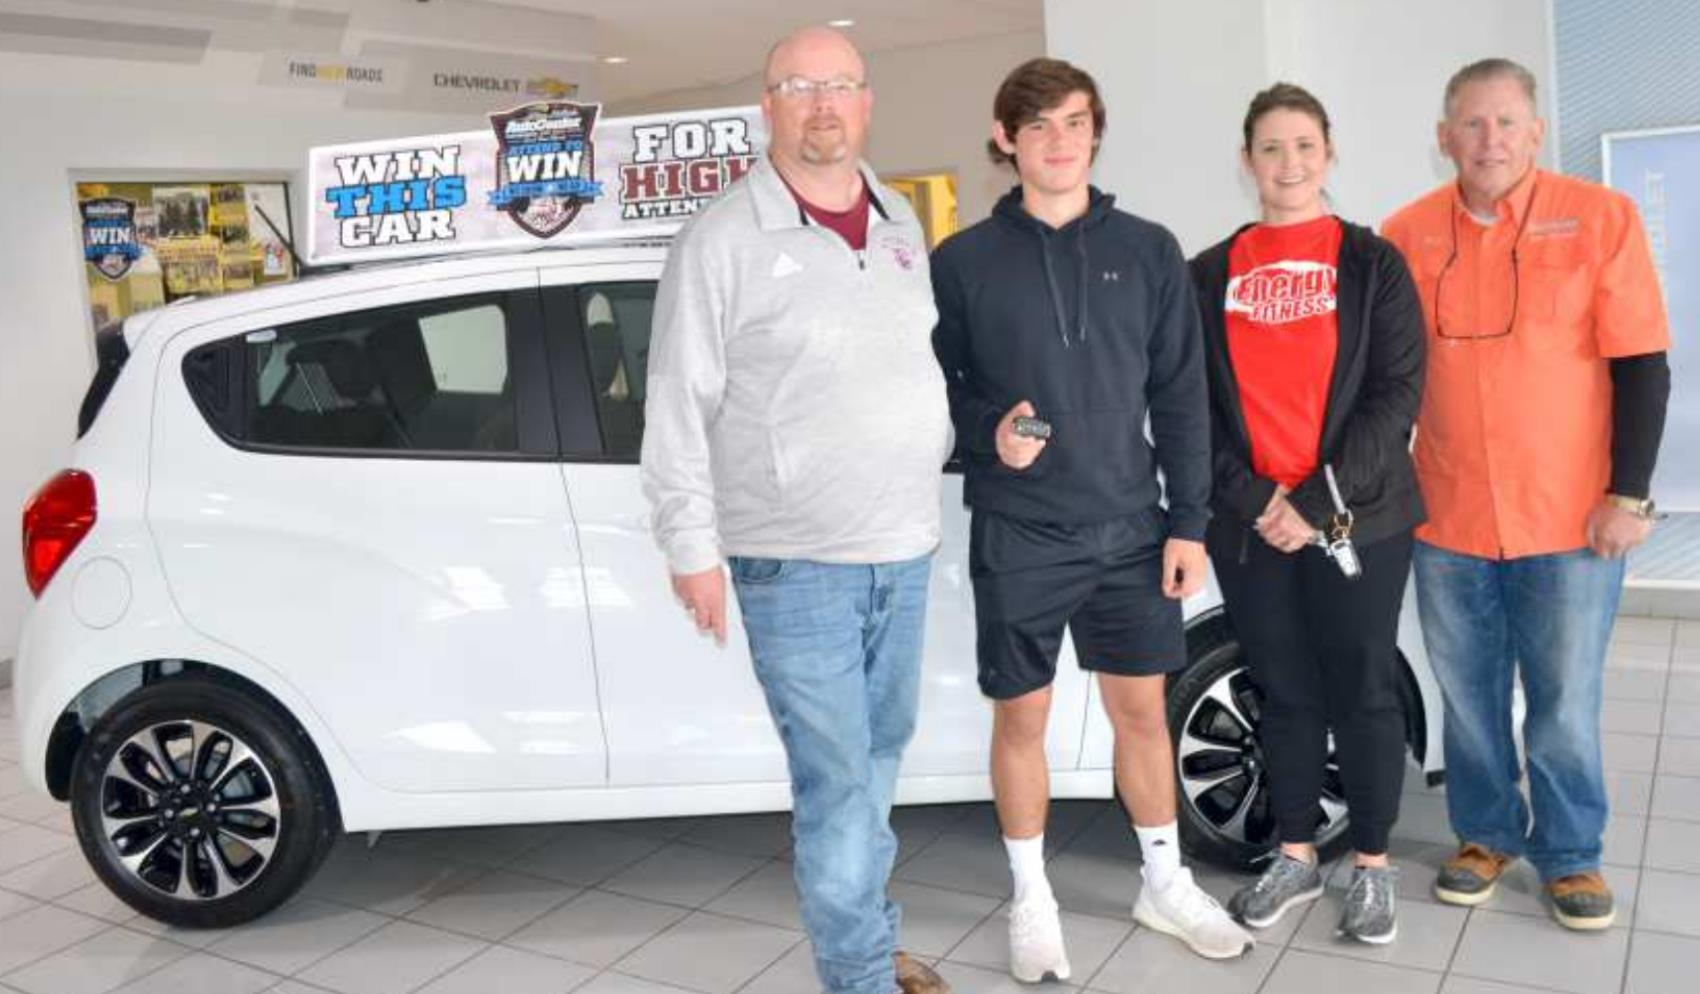 LITTLEFIELD STUDENT WINS CAR!